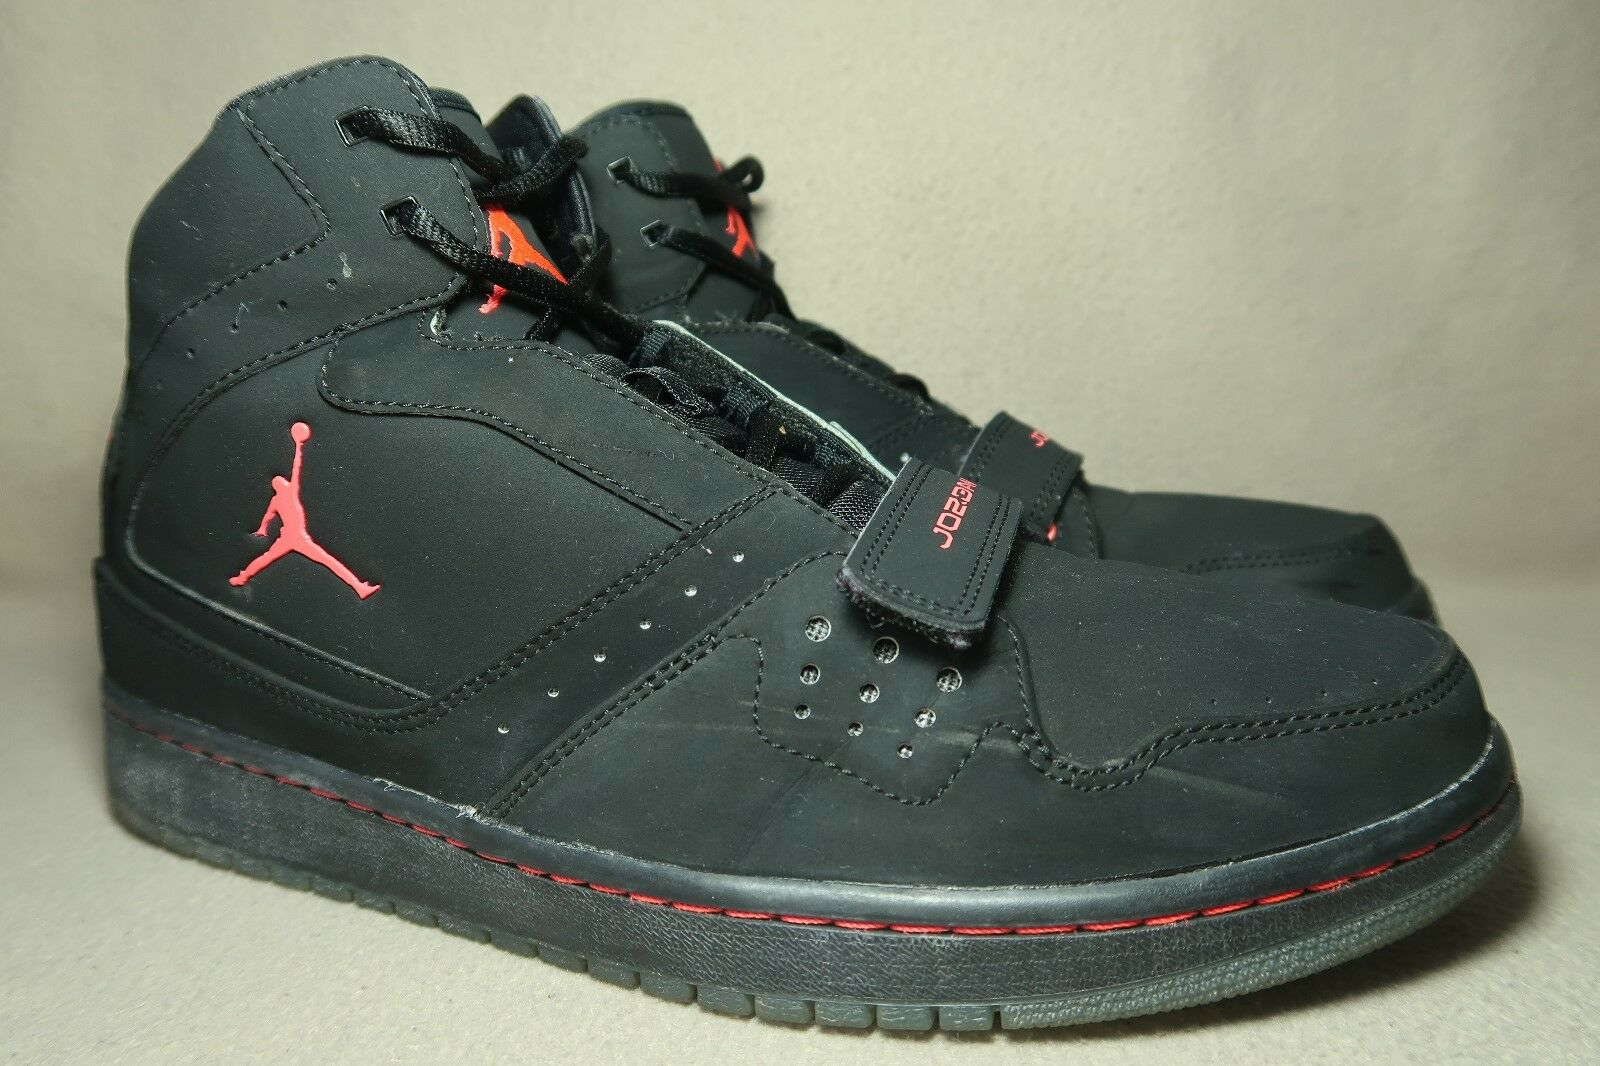 NIKE JORDAN 1 FLIGHT STRAP Black/Infra Red Basketball Trainers / Casual wild